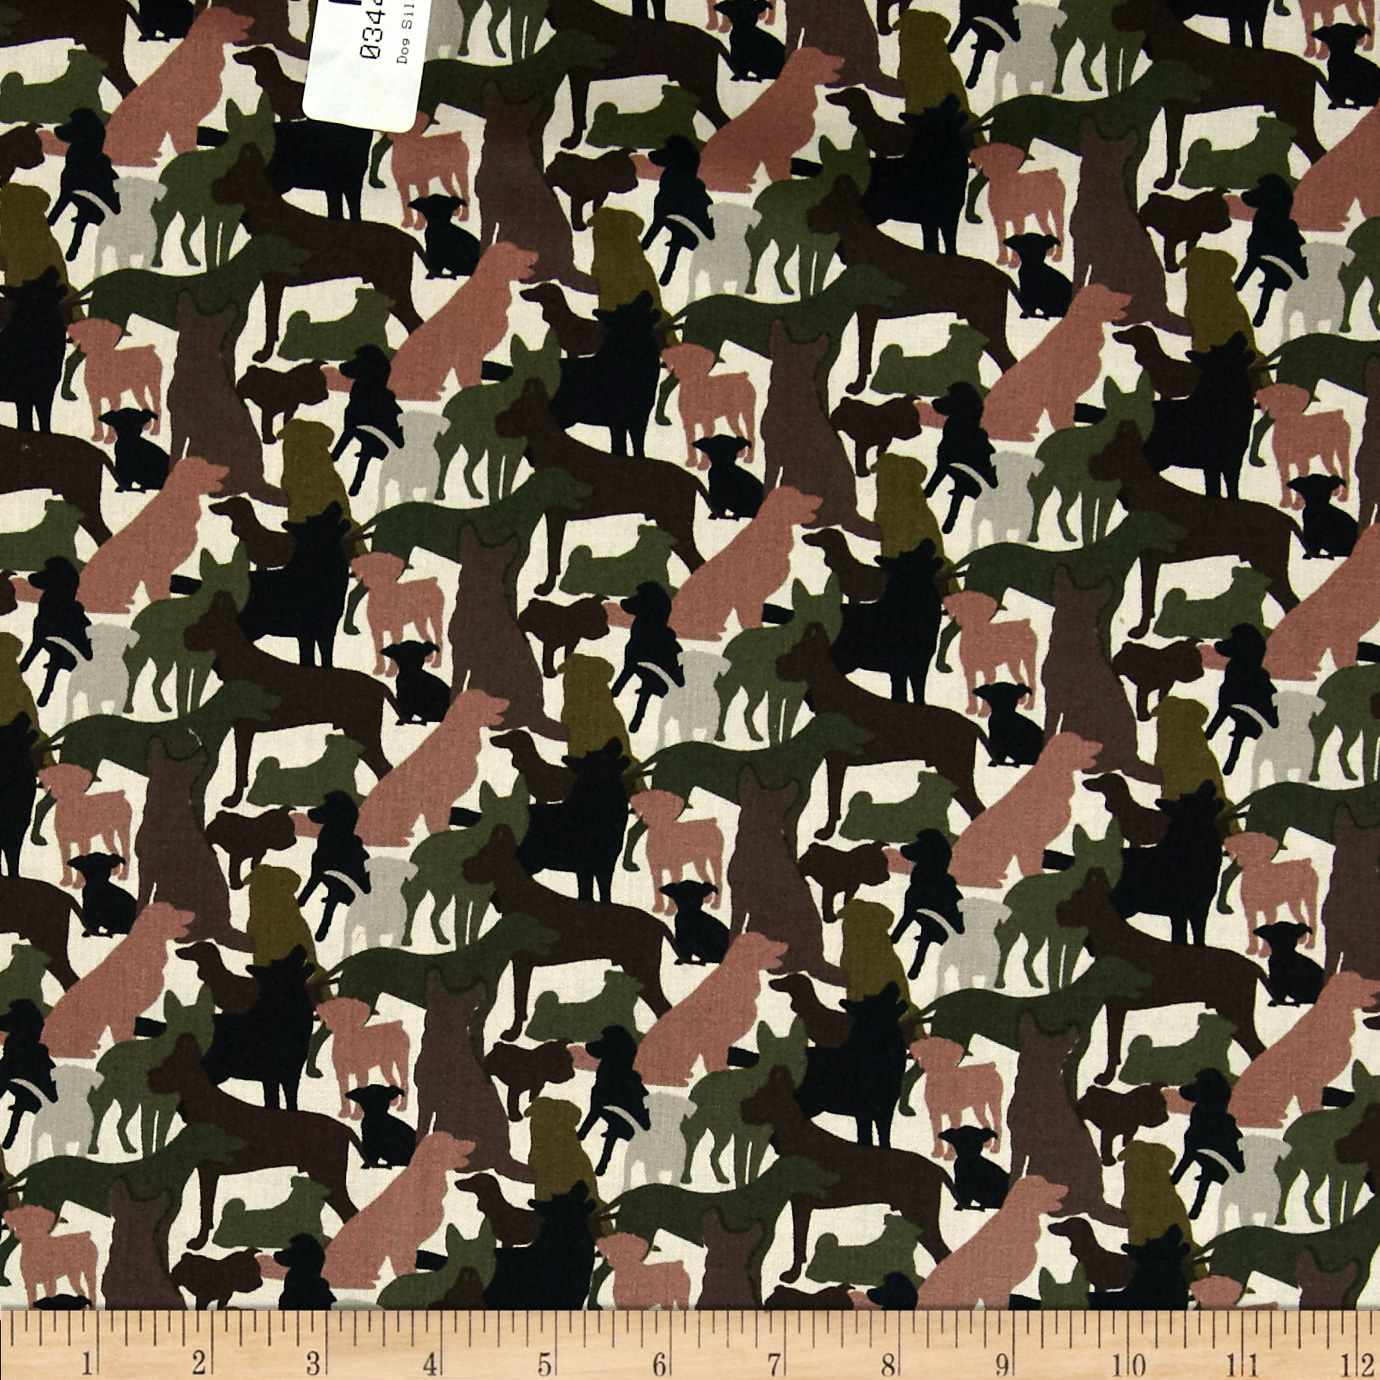 Dog Silouettes Hunter Green Fabric